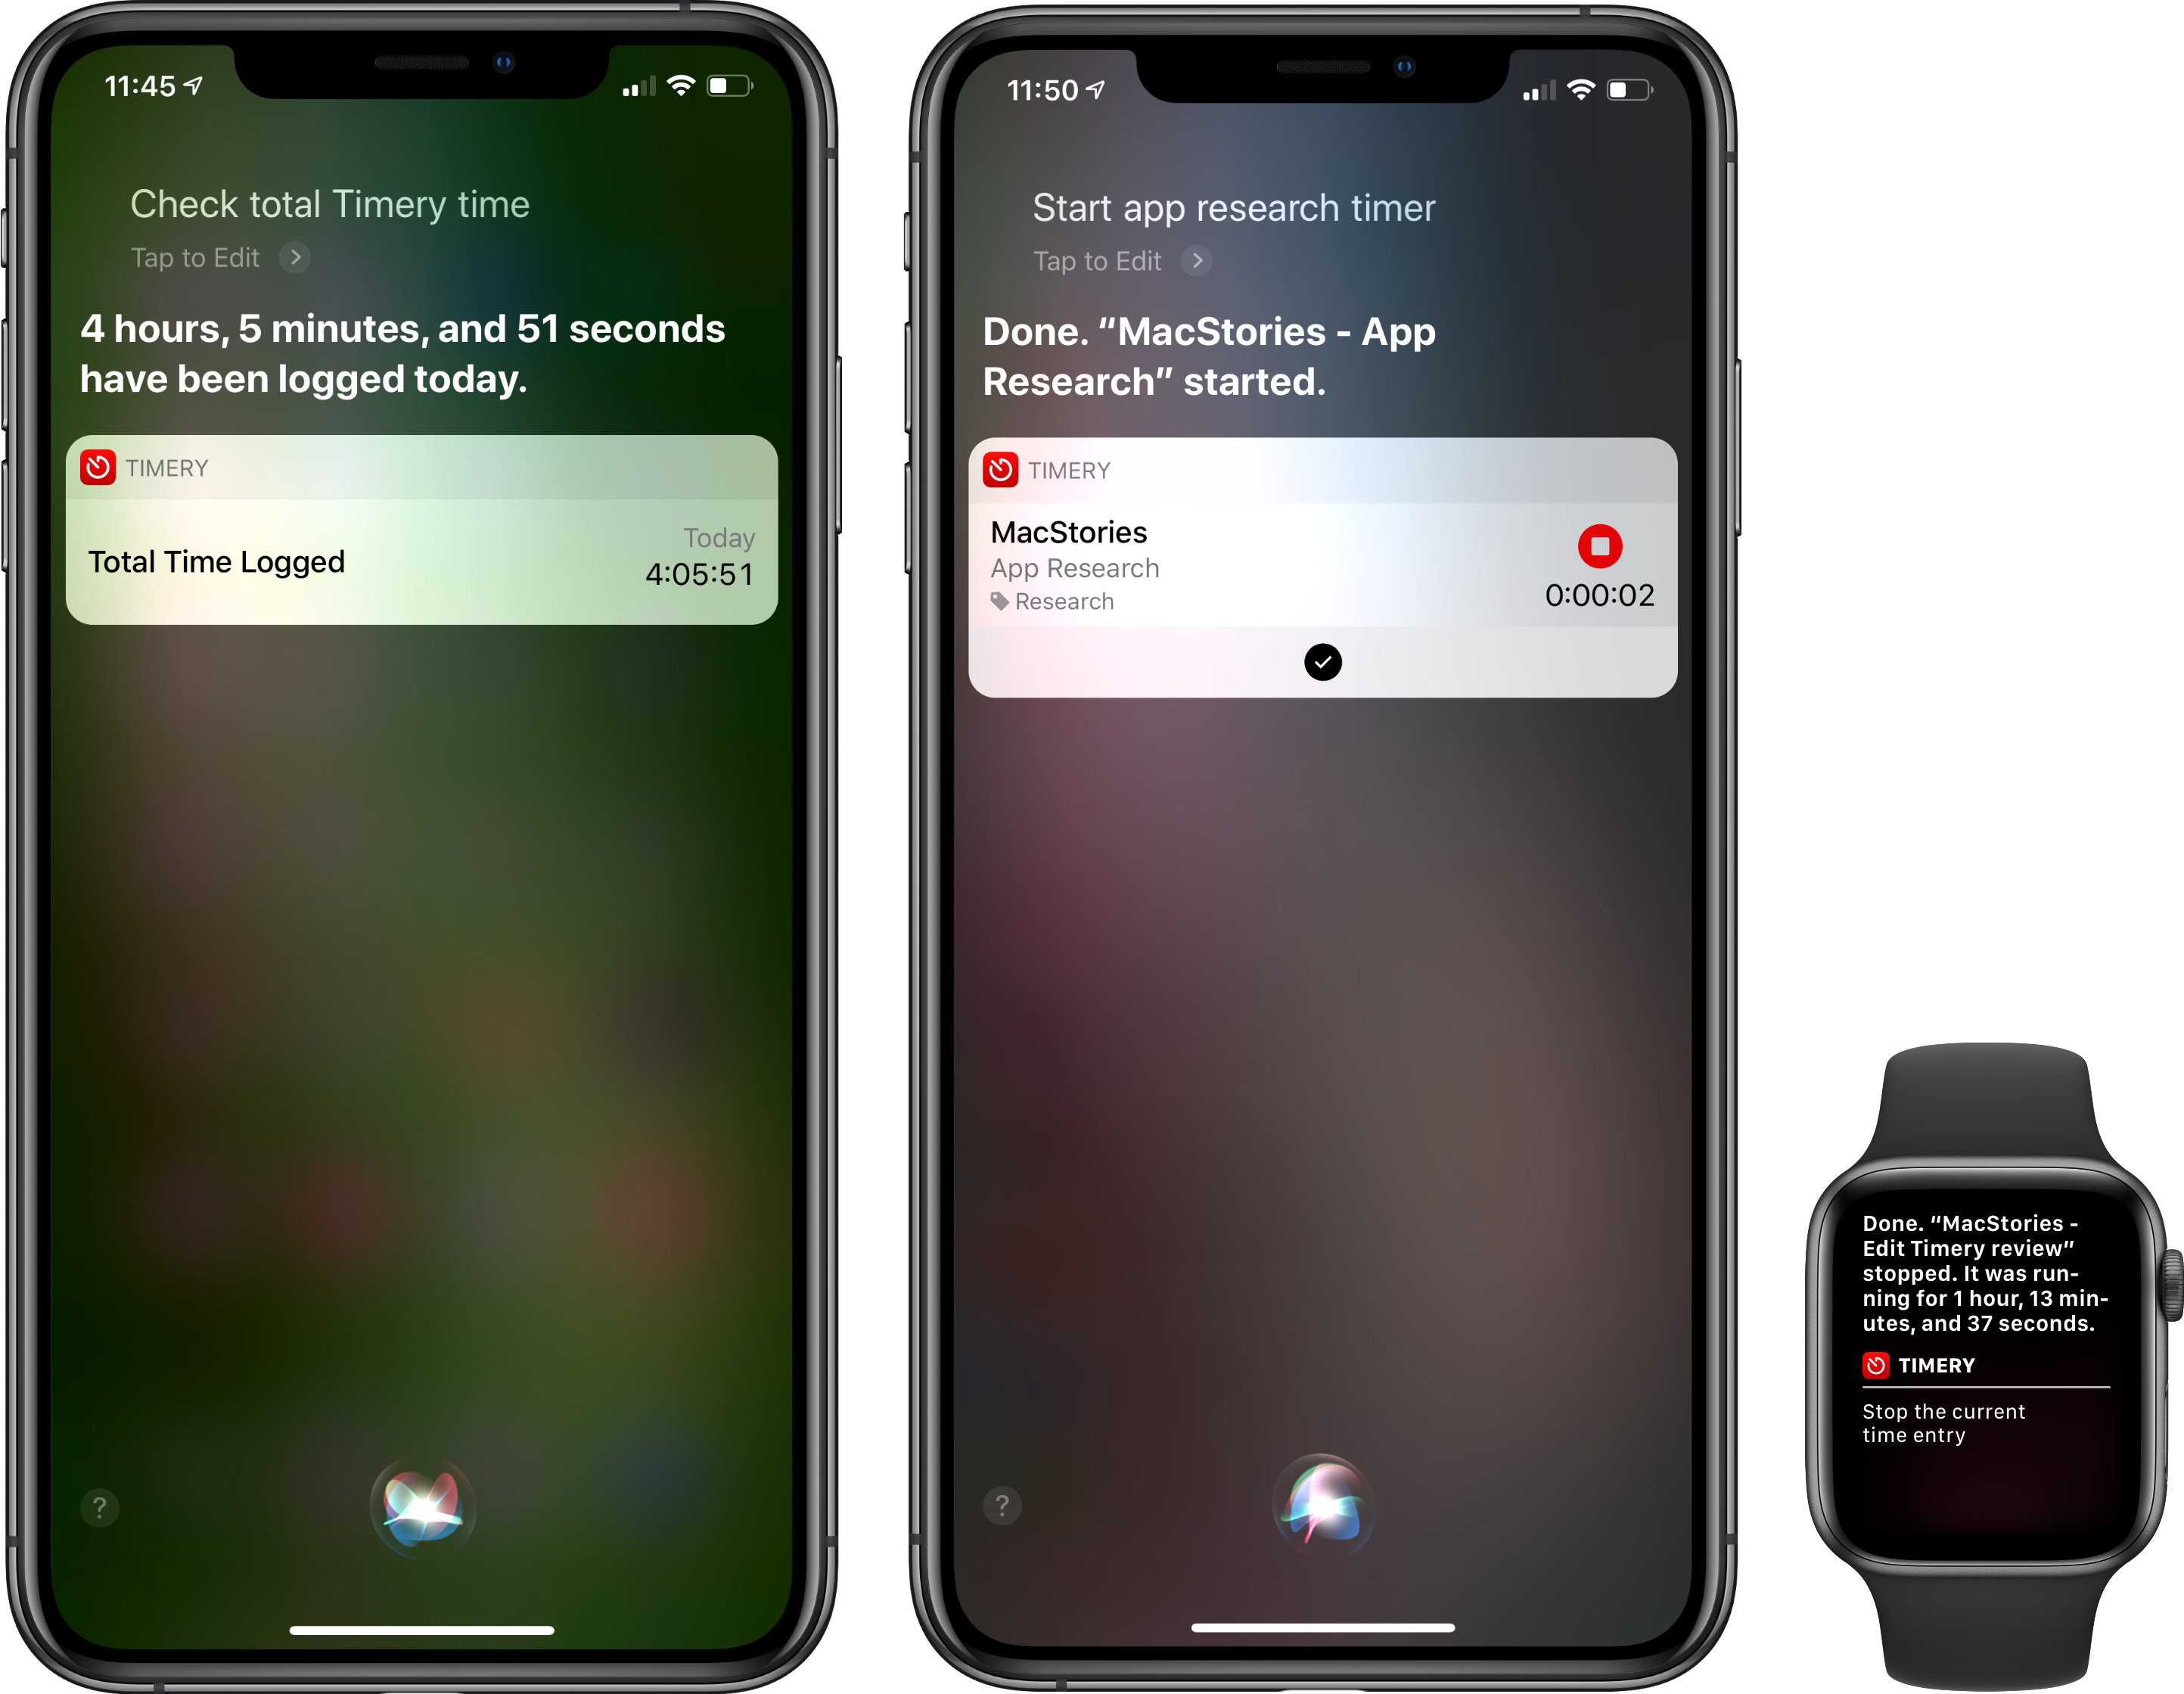 Timery's Siri shortcut can start, stop, and report on elapsed time tracked.